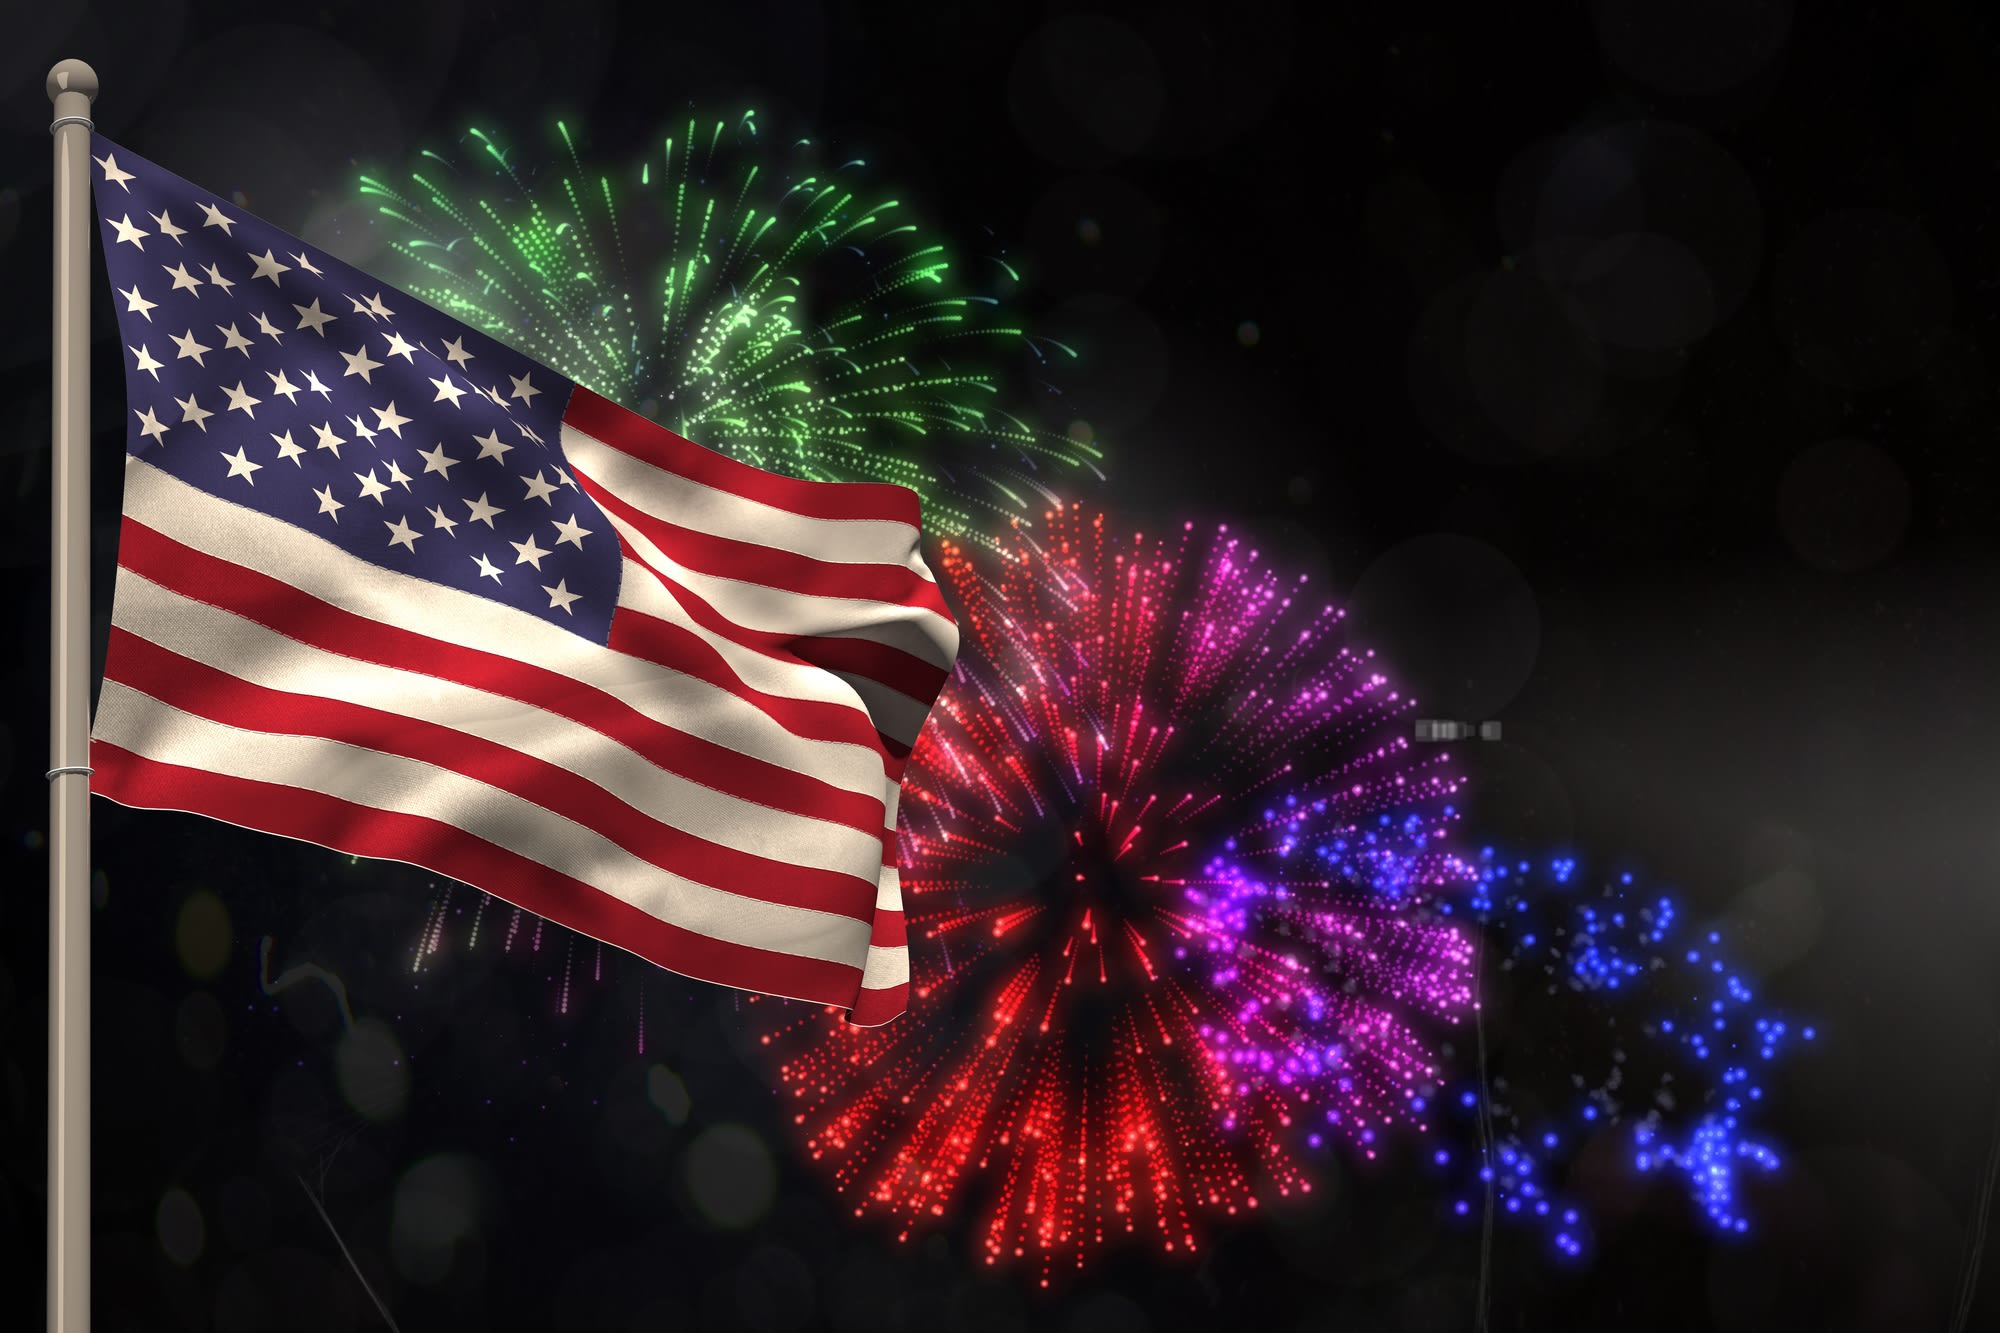 American+flag+and+fireworks